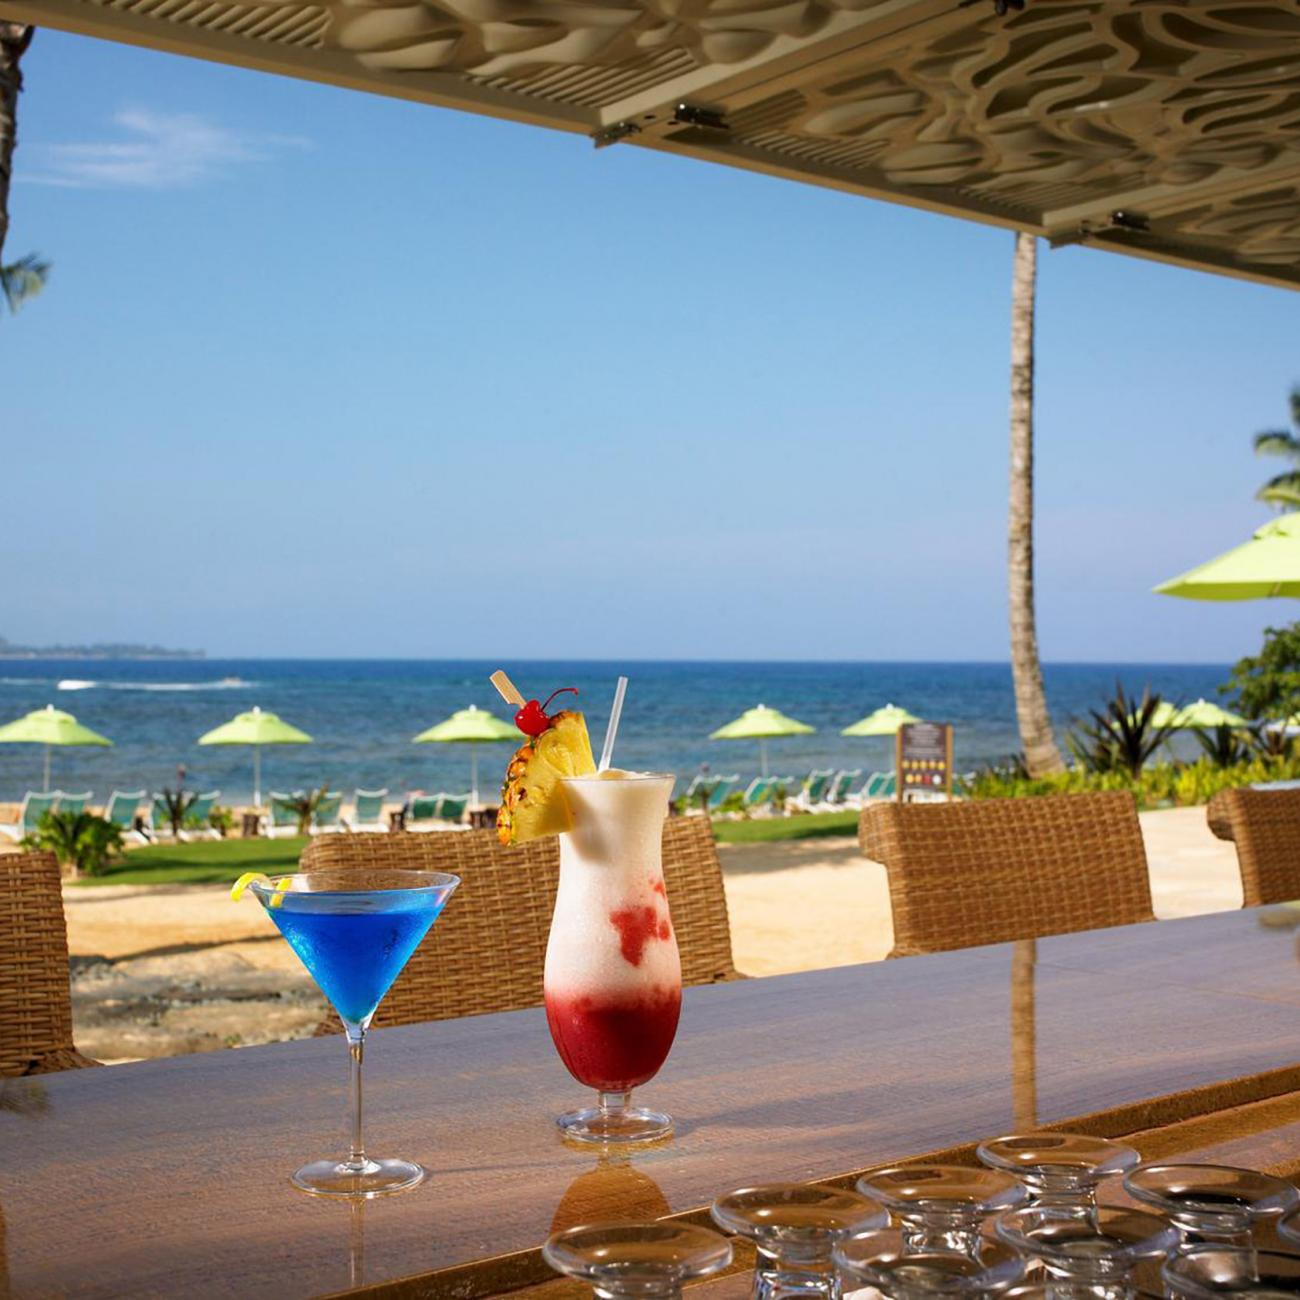 cocktails on a bar overlooking the ocean